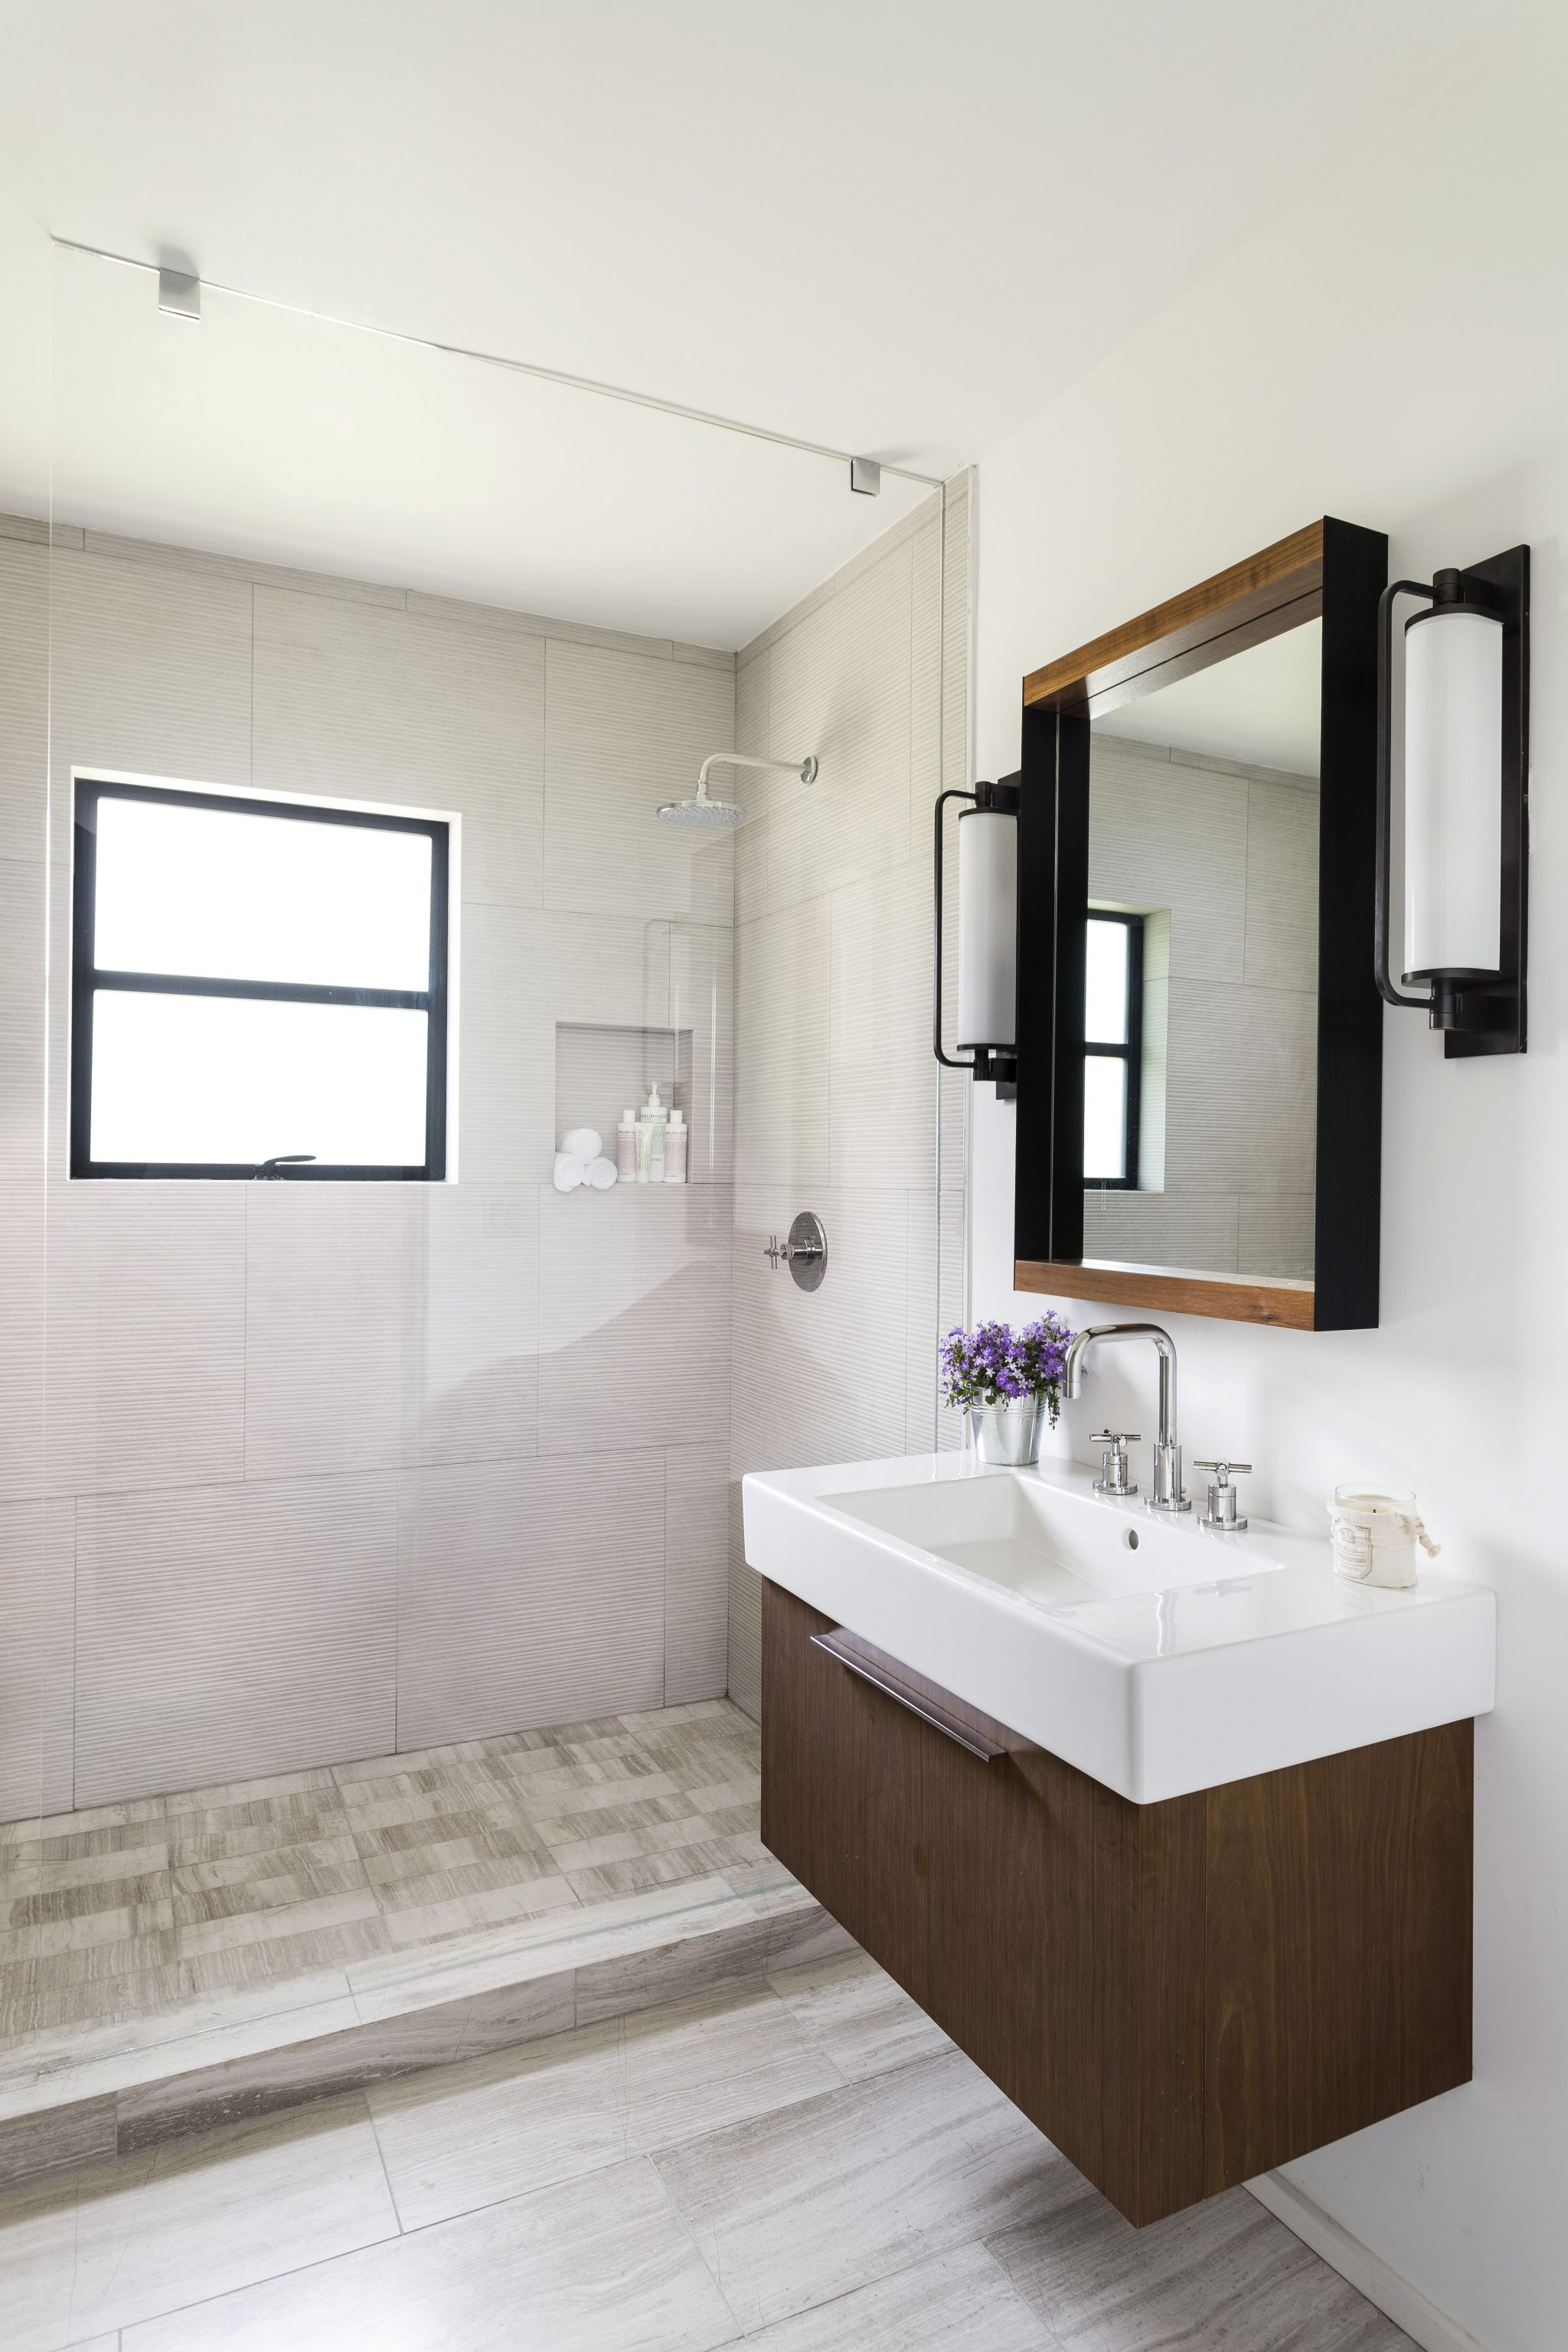 Interesting Interior Small Bathroom With Open Shower Area also Neat Vanity